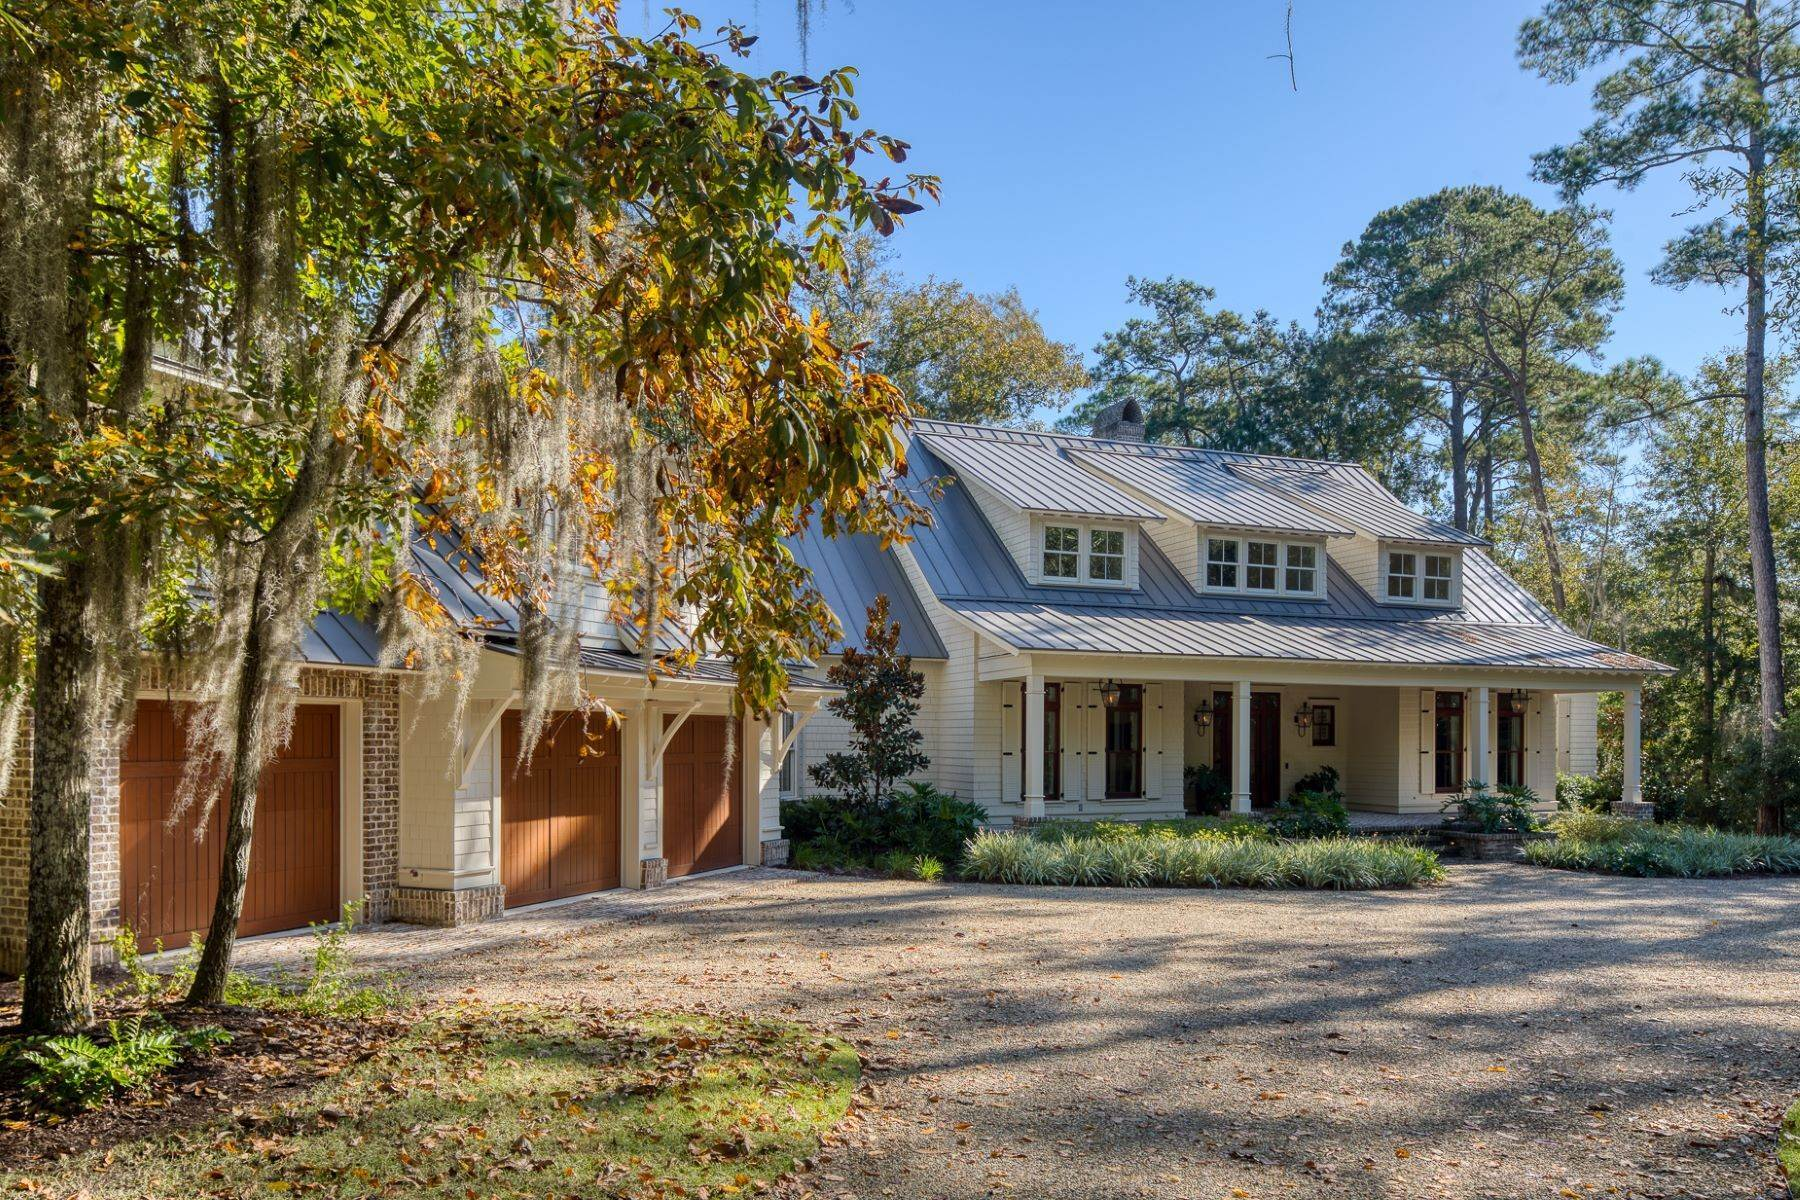 Single Family Homes for Sale at 133 Mount Pelia Road Bluffton, South Carolina 29910 United States